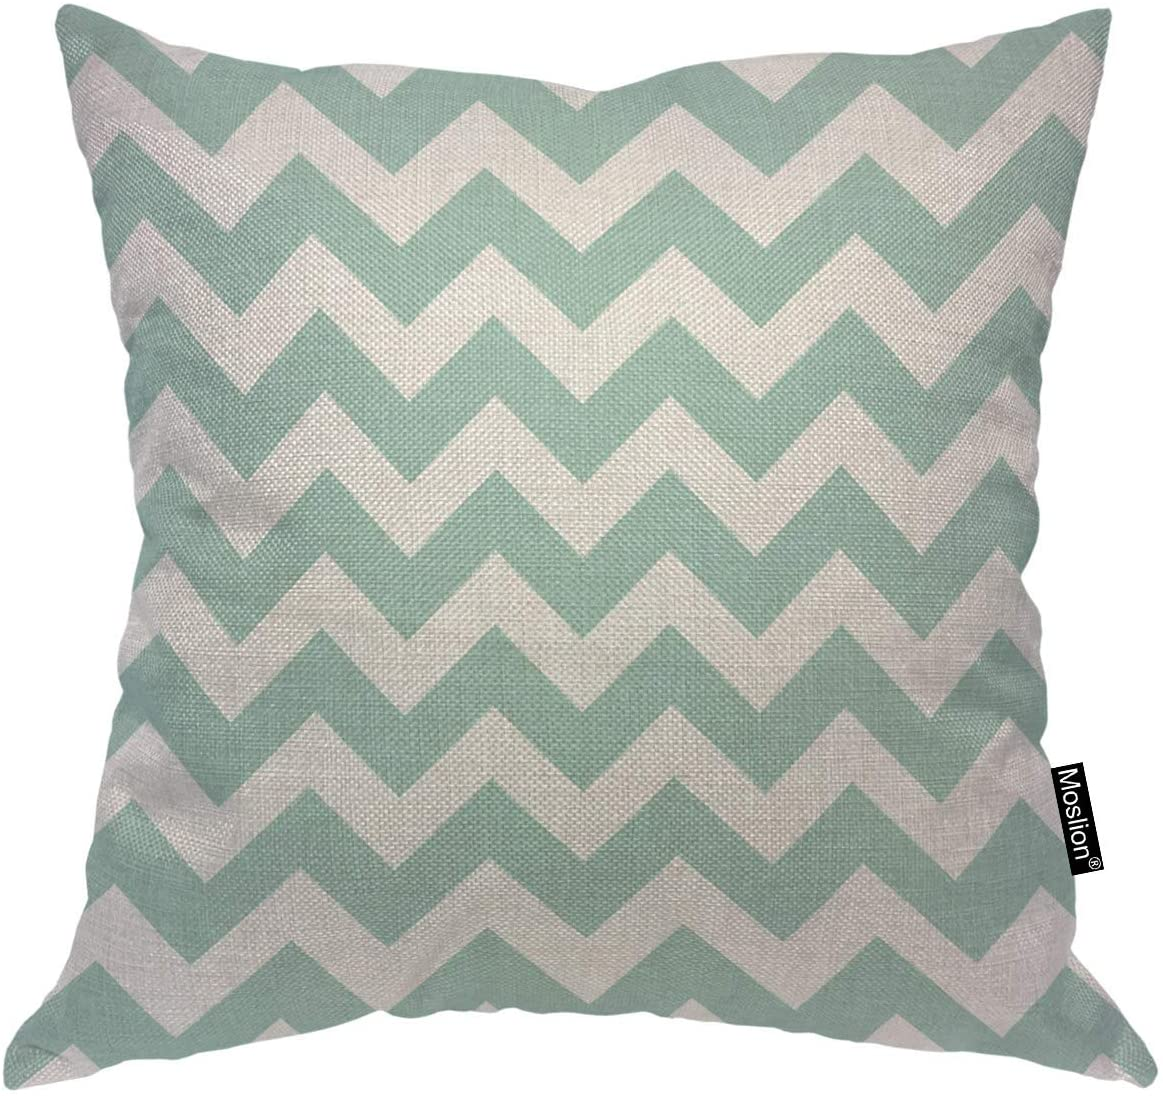 Moslion Chevron Throw Pillow Covers Geometrical Zigzag Stripes Ocean Wavy Stripes Blue White Pattern Square Pillow Case Cushion Cover for Home Car Decorative 18x18 Cotton Linen